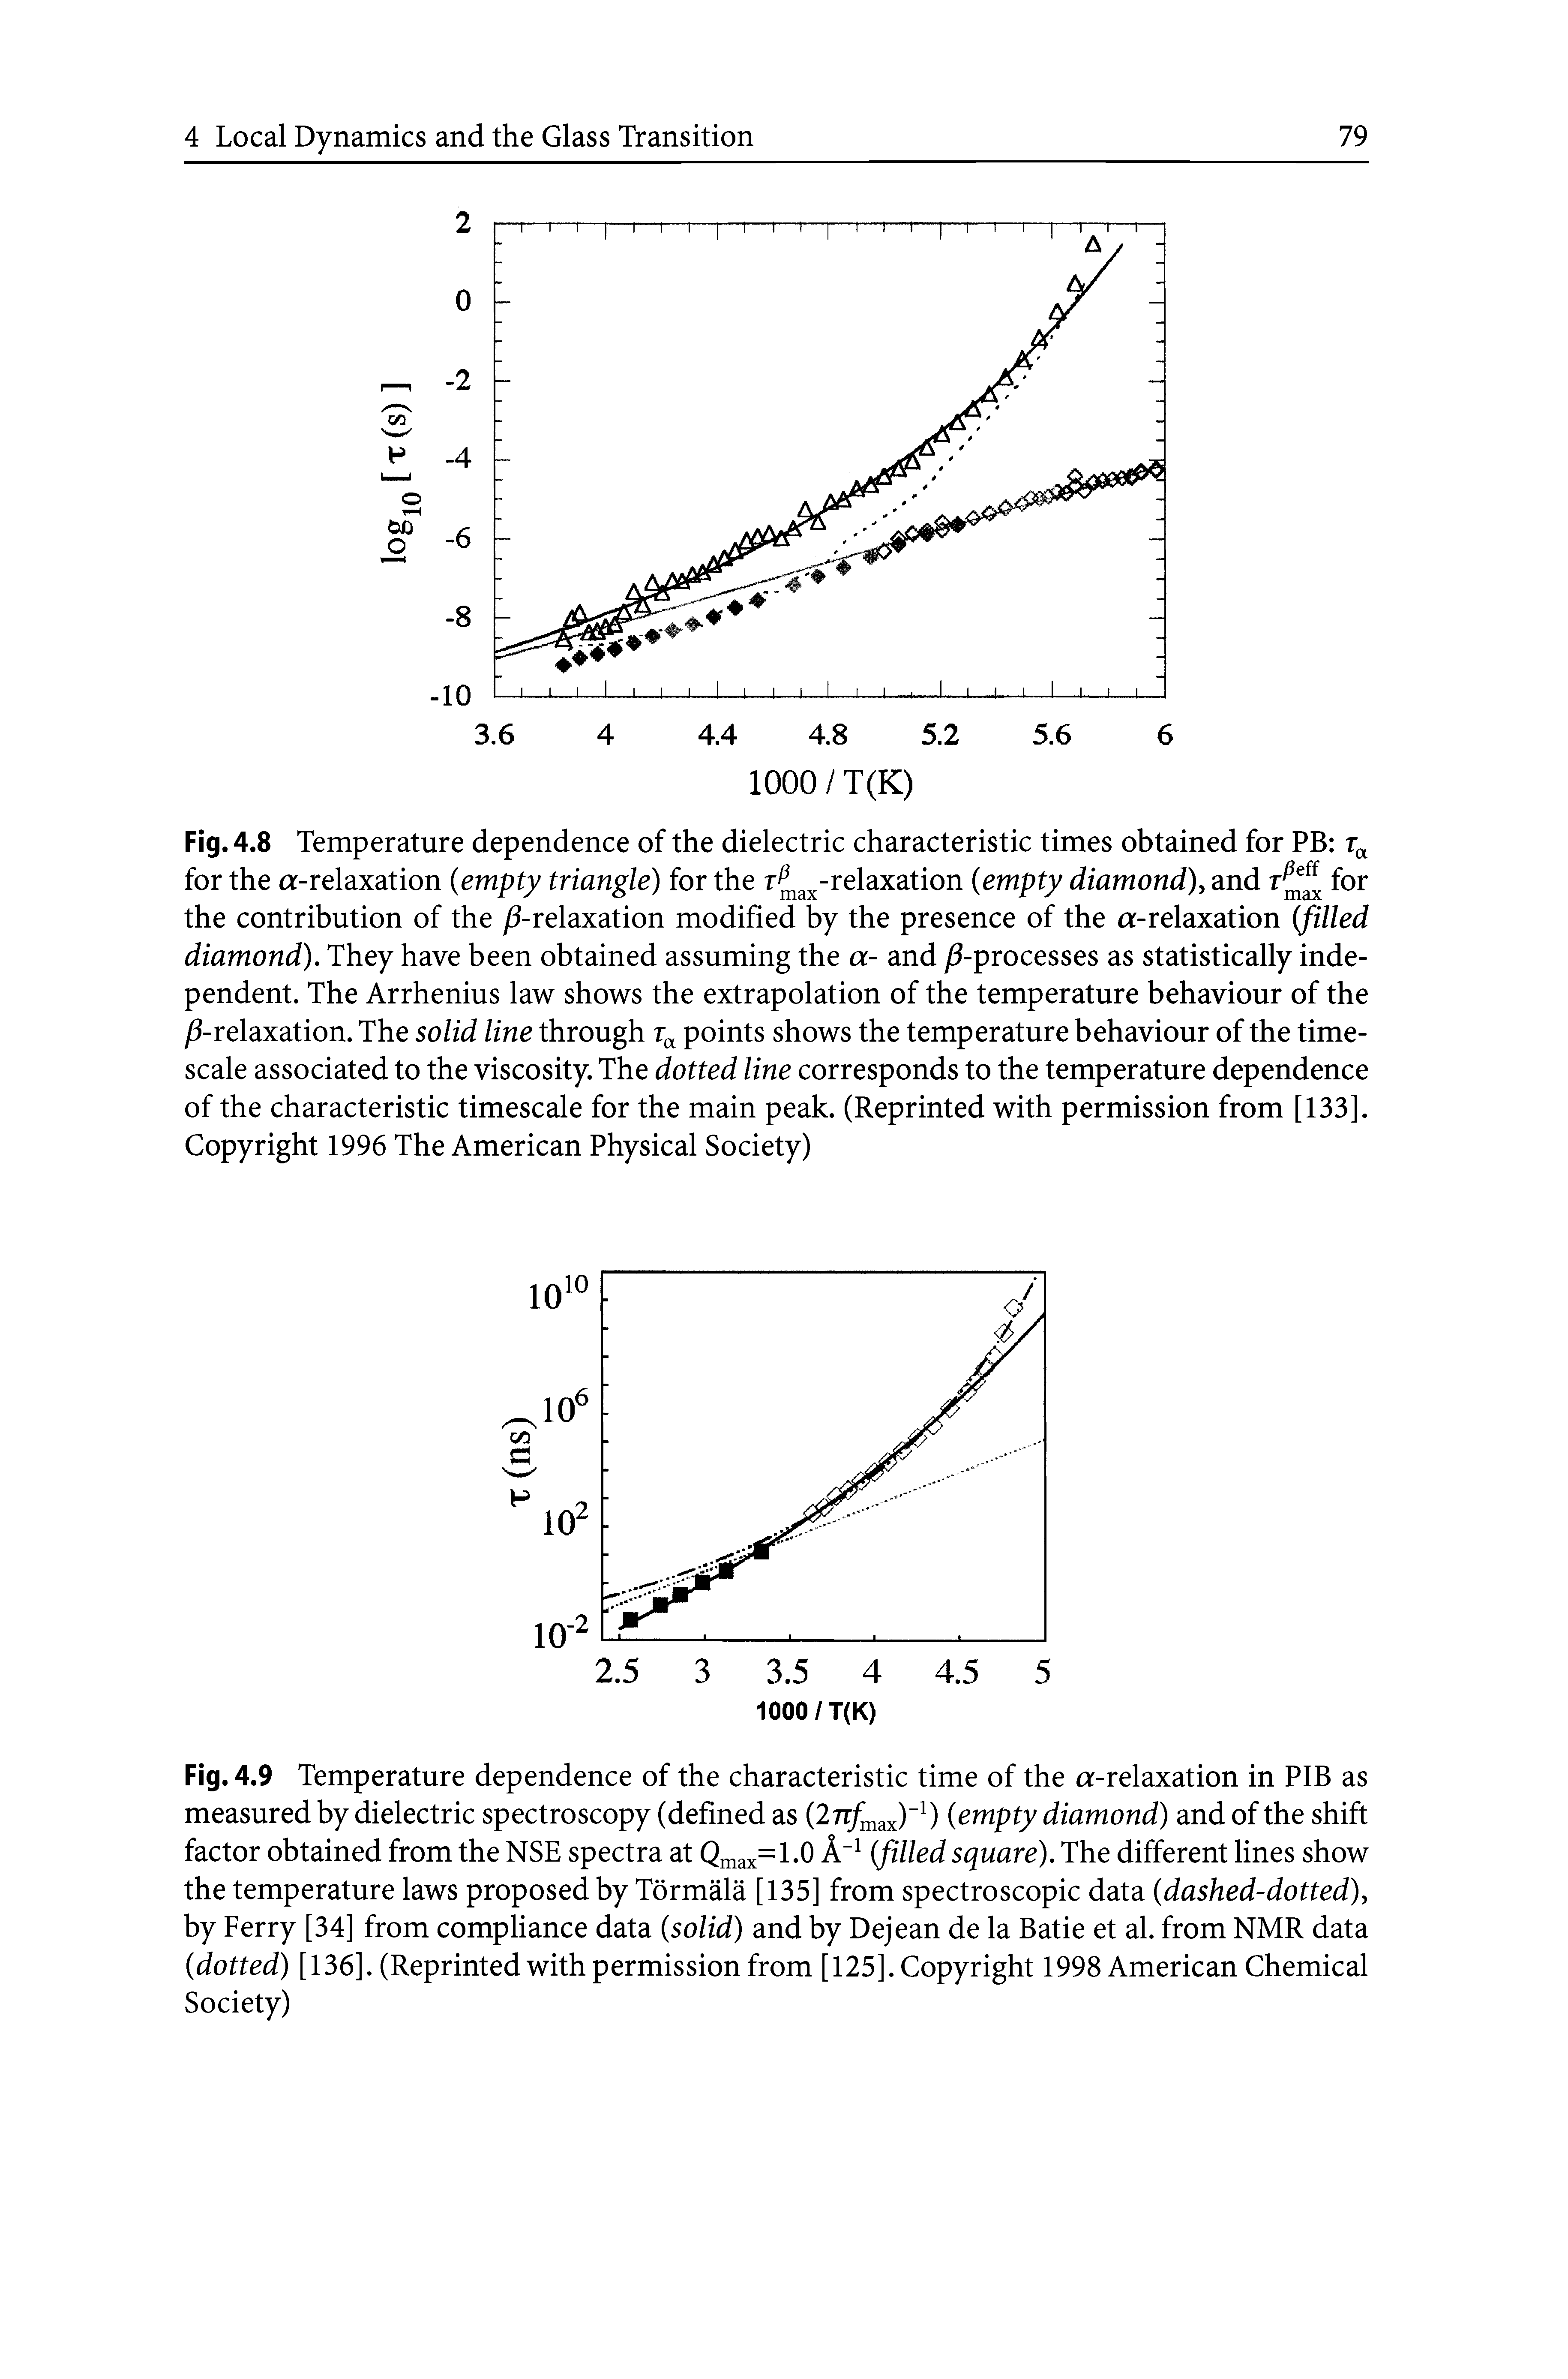 "Fig. 4.8 <a href=""/info/ph_temperature_dependence"">Temperature dependence</a> of the dielectric characteristic times obtained for PB for the a-relaxation (empty triangle) for the r -relaxation (empty diamond), and for the contribution of the -relaxation modified by the presence of the a-relaxation (filled diamond). They have been obtained assuming the a- and -processes as <a href=""/info/statistical_independence"">statistically independent</a>. The Arrhenius law shows the extrapolation of the <a href=""/info/low_temperature_behaviour"">temperature behaviour</a> of the -relaxation. The <a href=""/info/solid_lines"">solid line</a> <a href=""/info/through_two_points"">through points</a> shows the <a href=""/info/low_temperature_behaviour"">temperature behaviour</a> of the <a href=""/info/time_scales"">time-scale</a> associated to the viscosity. The dotted line corresponds to the <a href=""/info/ph_temperature_dependence"">temperature dependence</a> of the <a href=""/info/characteristic_timescale"">characteristic timescale</a> for the <a href=""/info/main_peaks"">main peak</a>. (Reprinted with permission from [133]. Copyright 1996 The American Physical Society)"